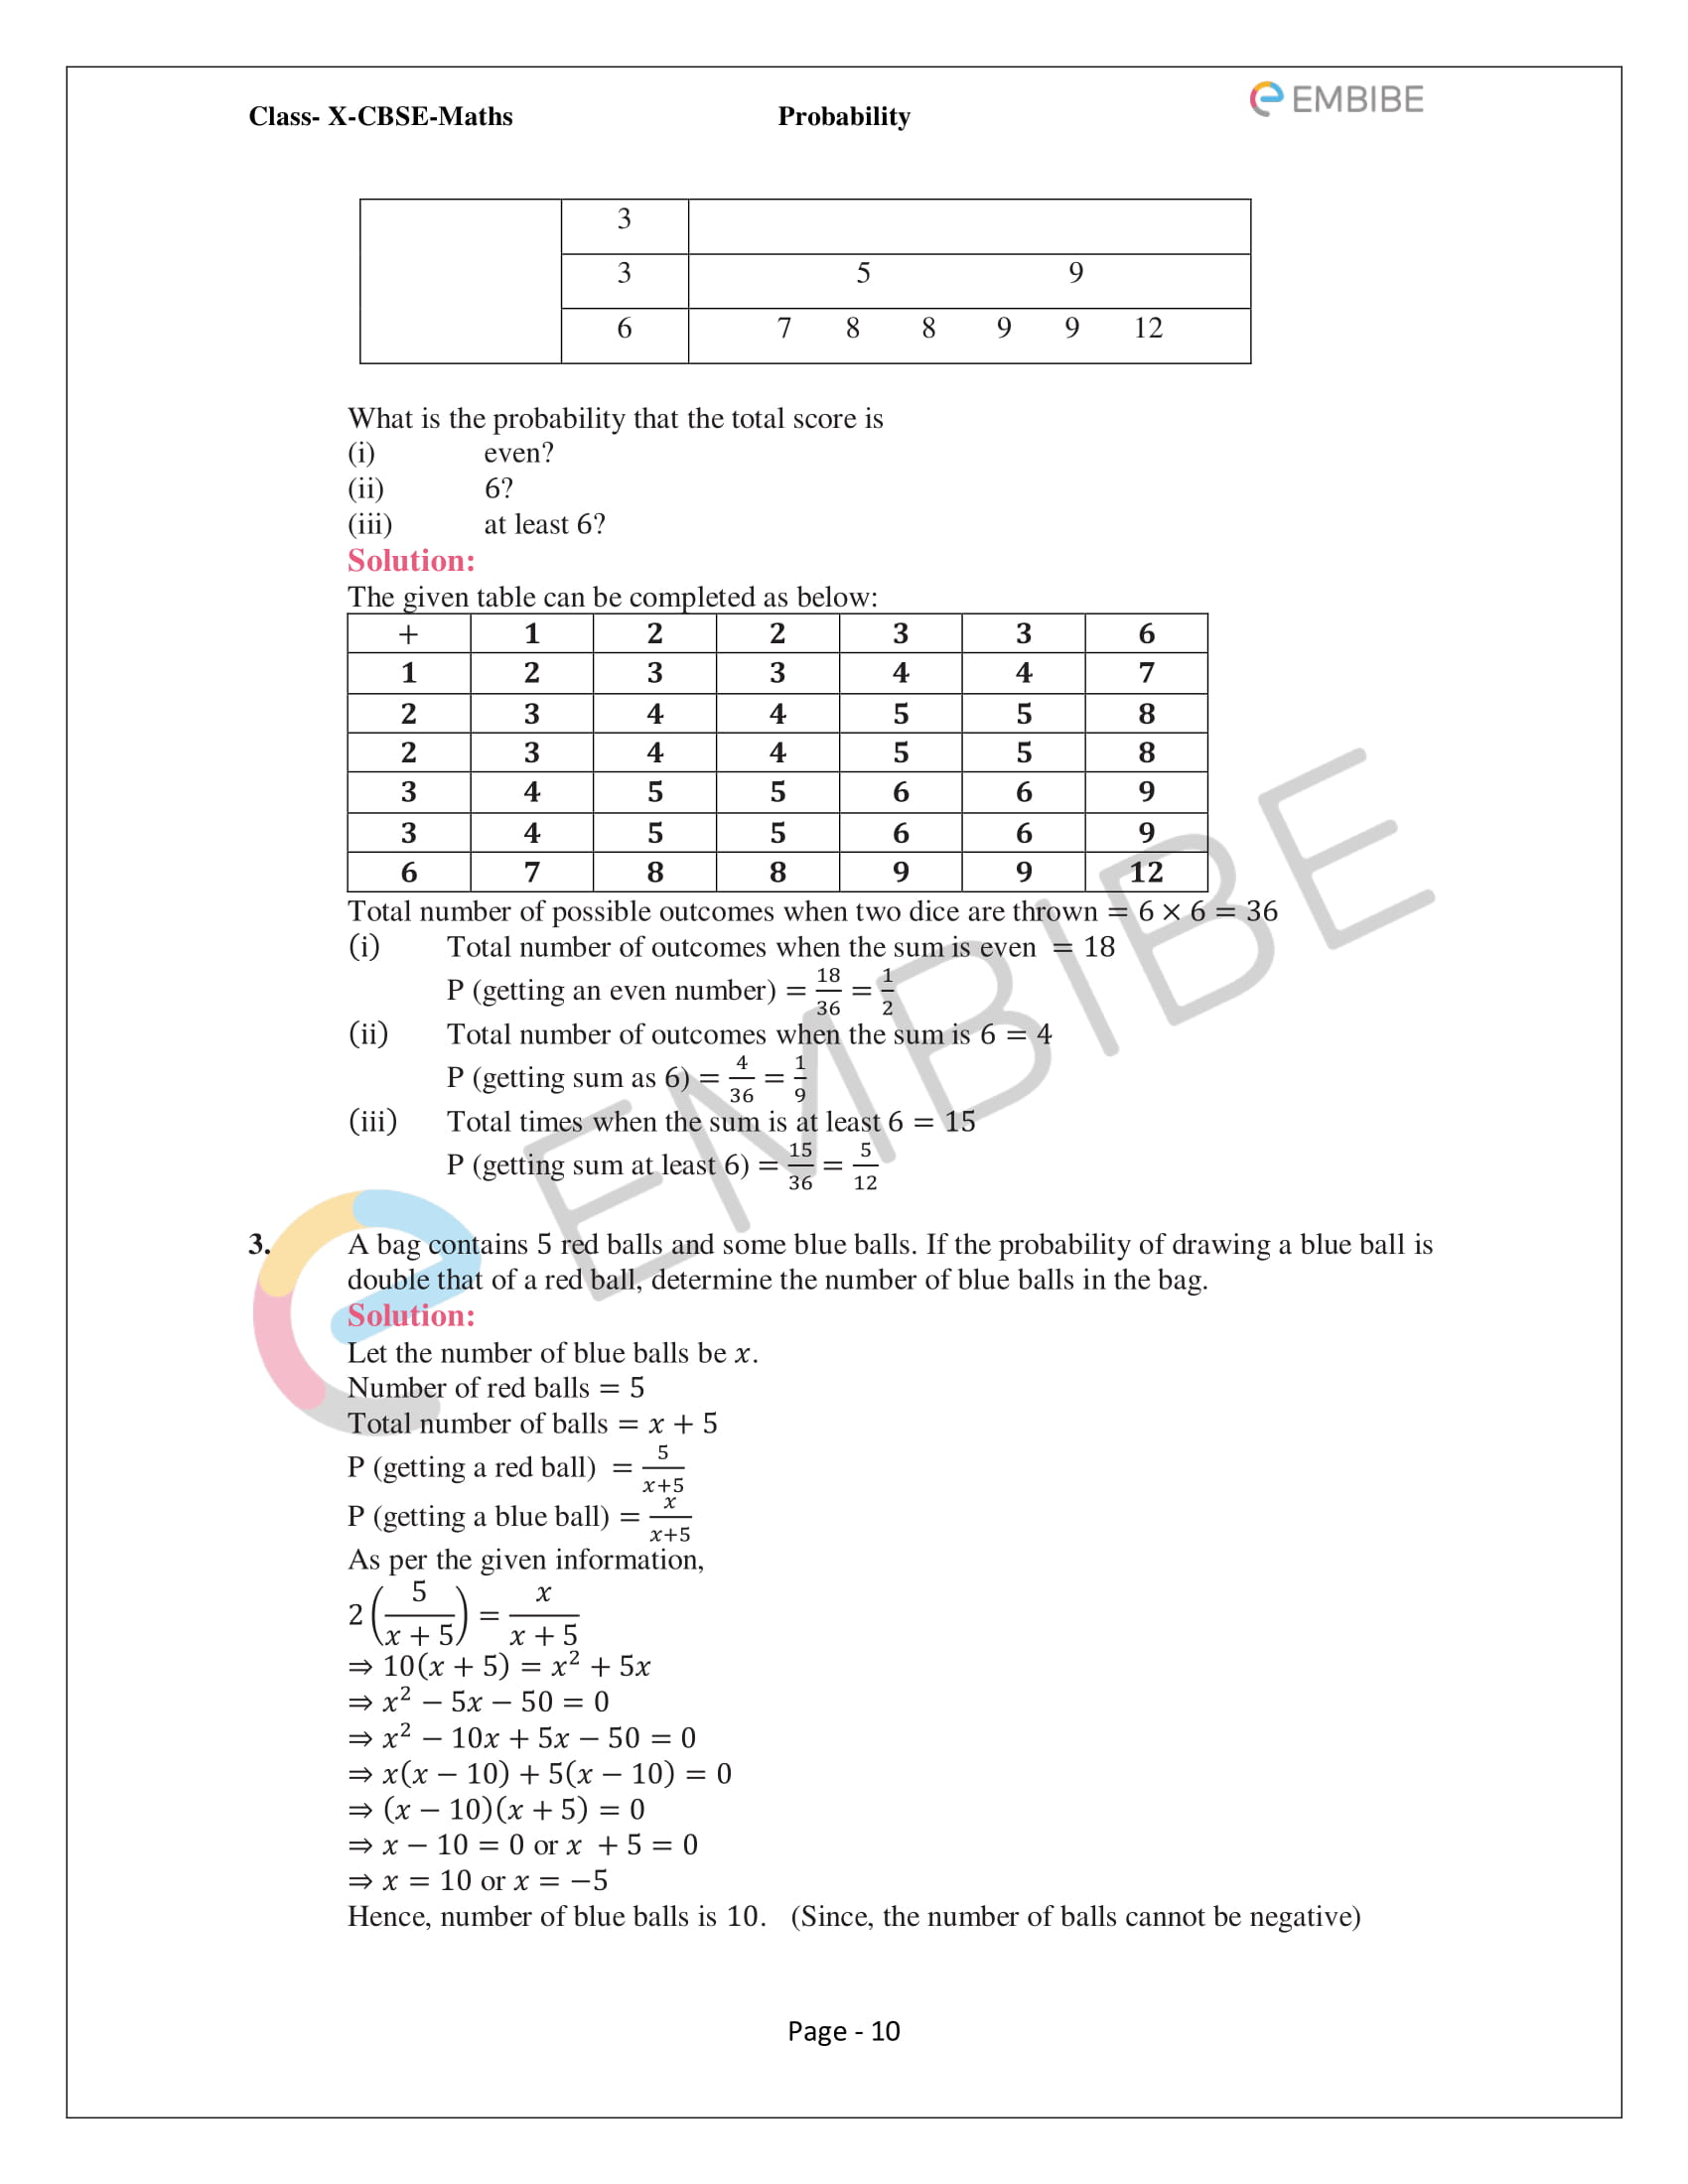 CBSE NCERT Solutions For Class 10 Maths Chapter 15 - Probability - 10